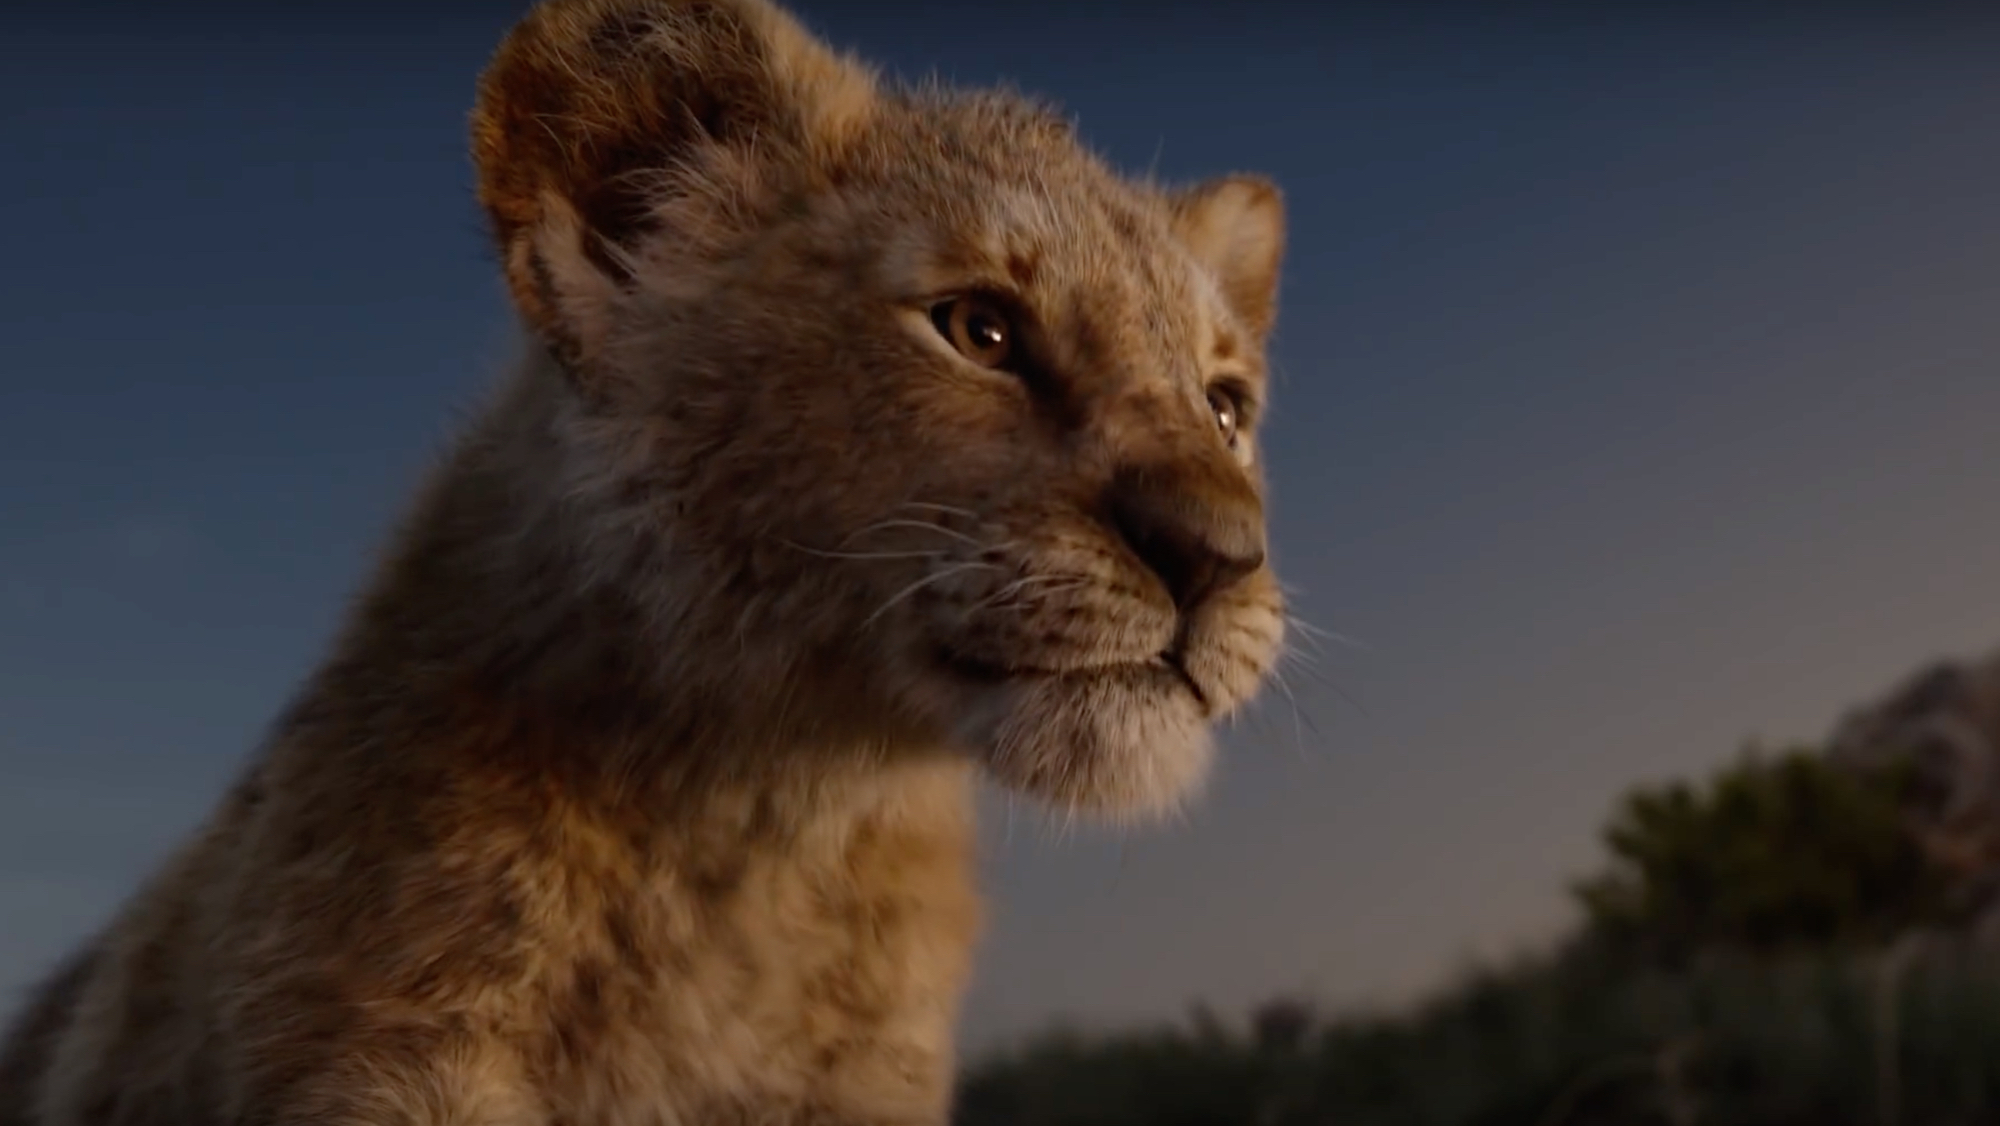 Review: The Lion King Is A Visually Stunning Feat | Wonderland